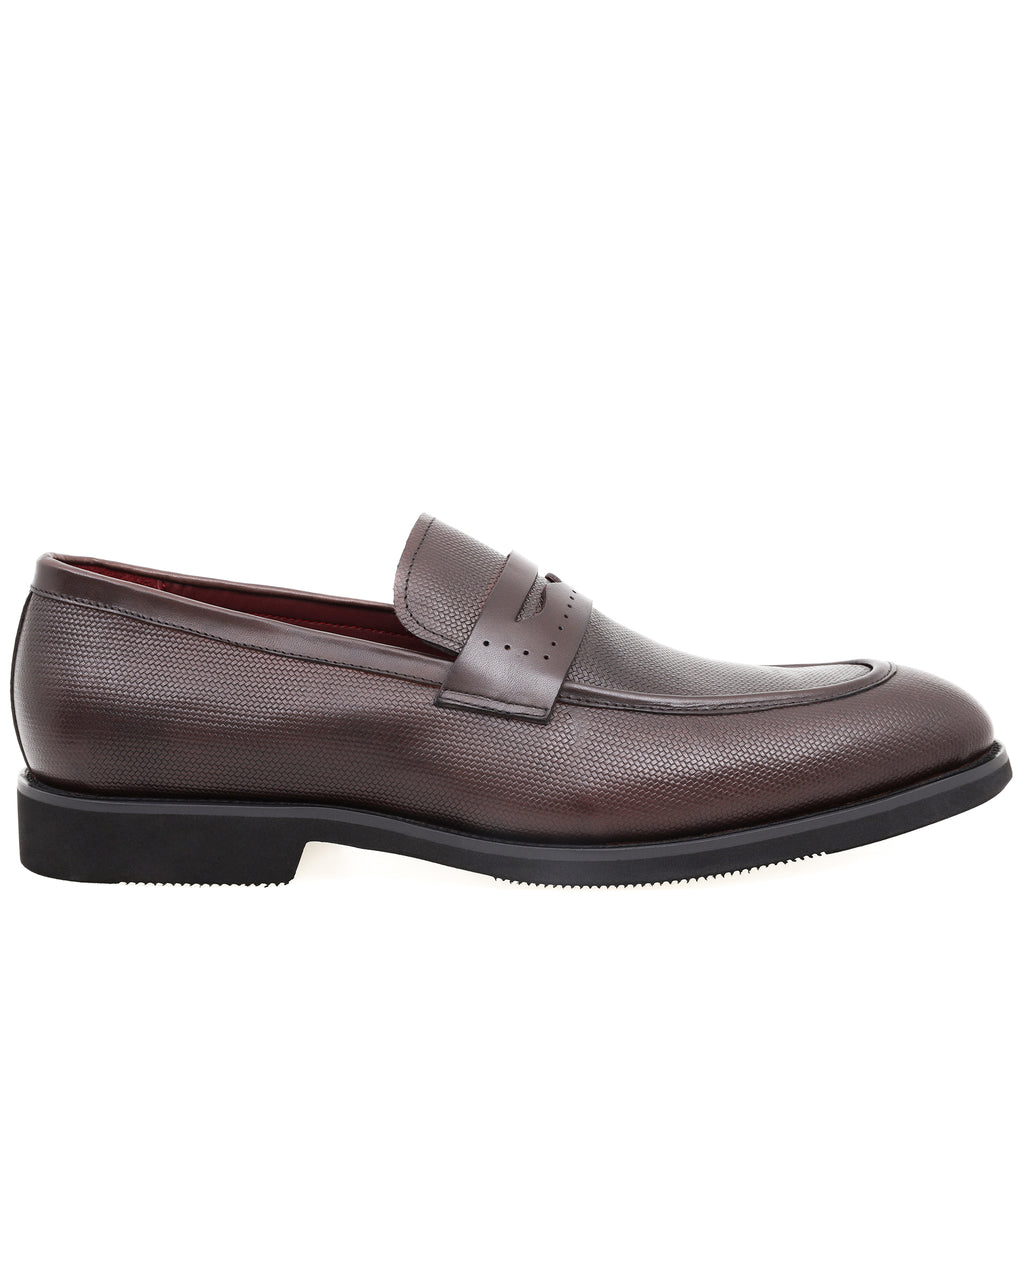 Tomaz HF014 Formal Penny Loafers (Coffee)